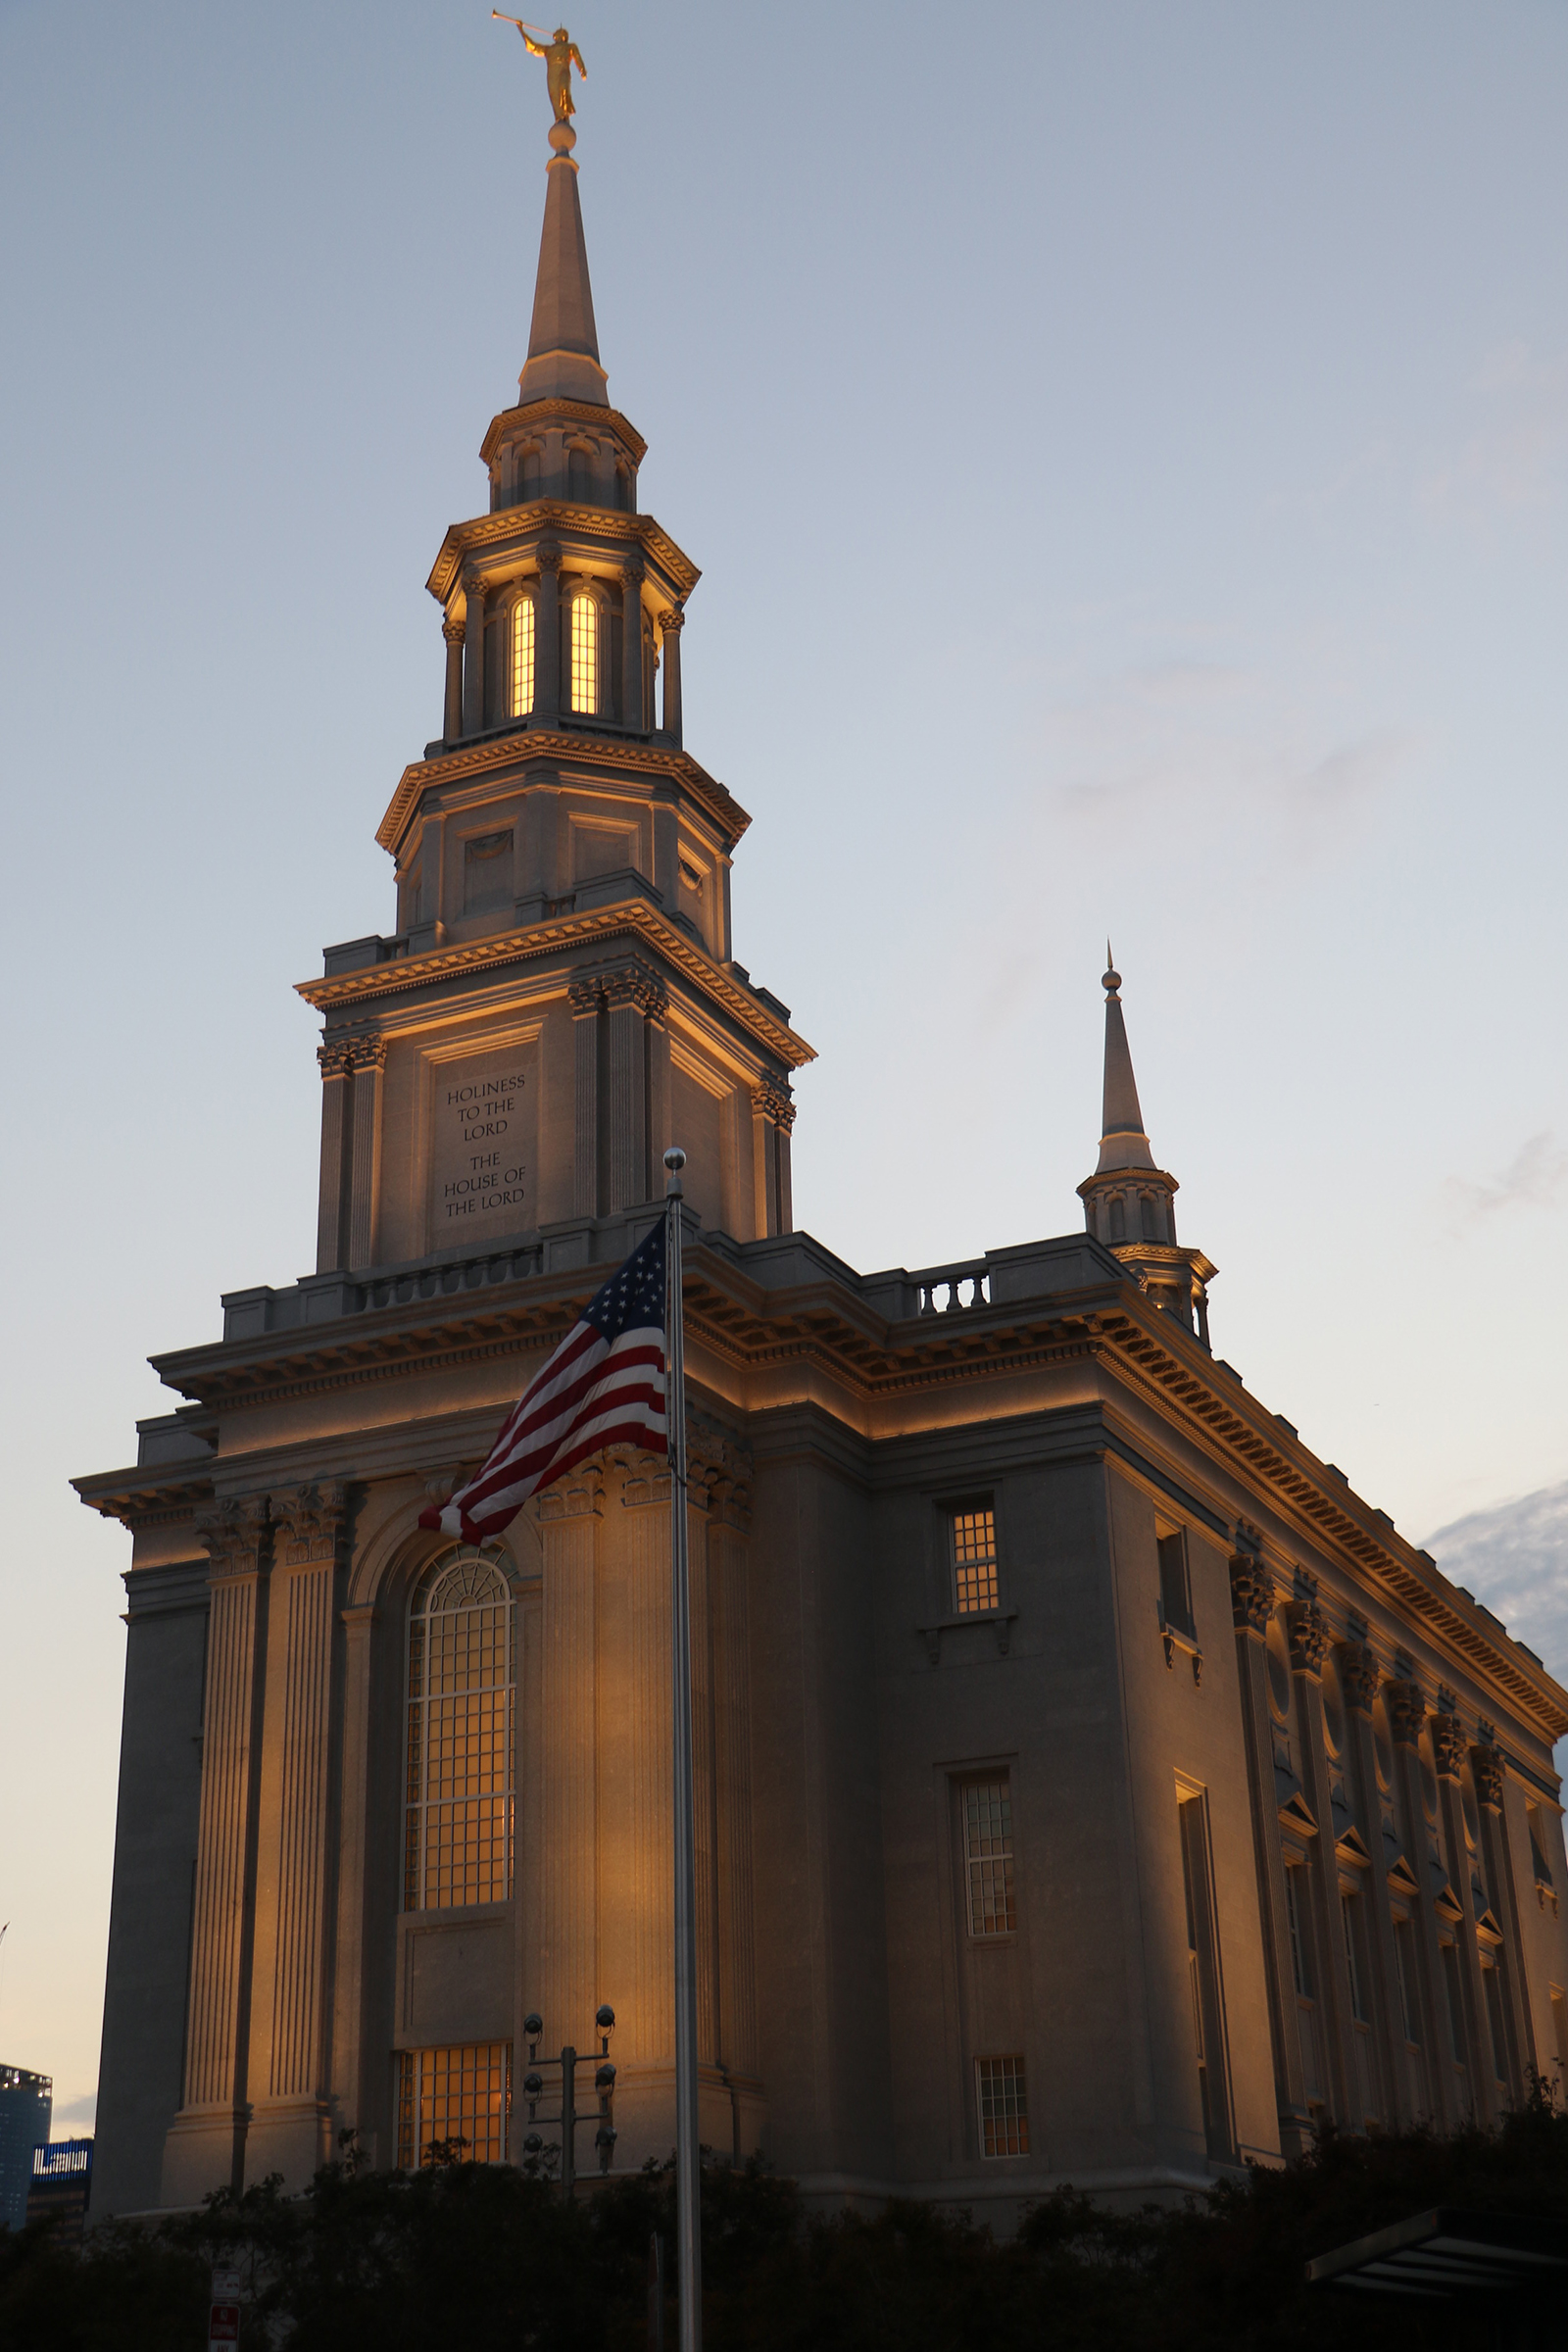 President Henry B. Eyring, first counselor in the First Presidency, dedicated the Philadelphia Pennsylvania Temple on Sept. 18, 2016 — the weekend anniversary of the Sept. 17, 1787, signing of the U.S. Constitution.